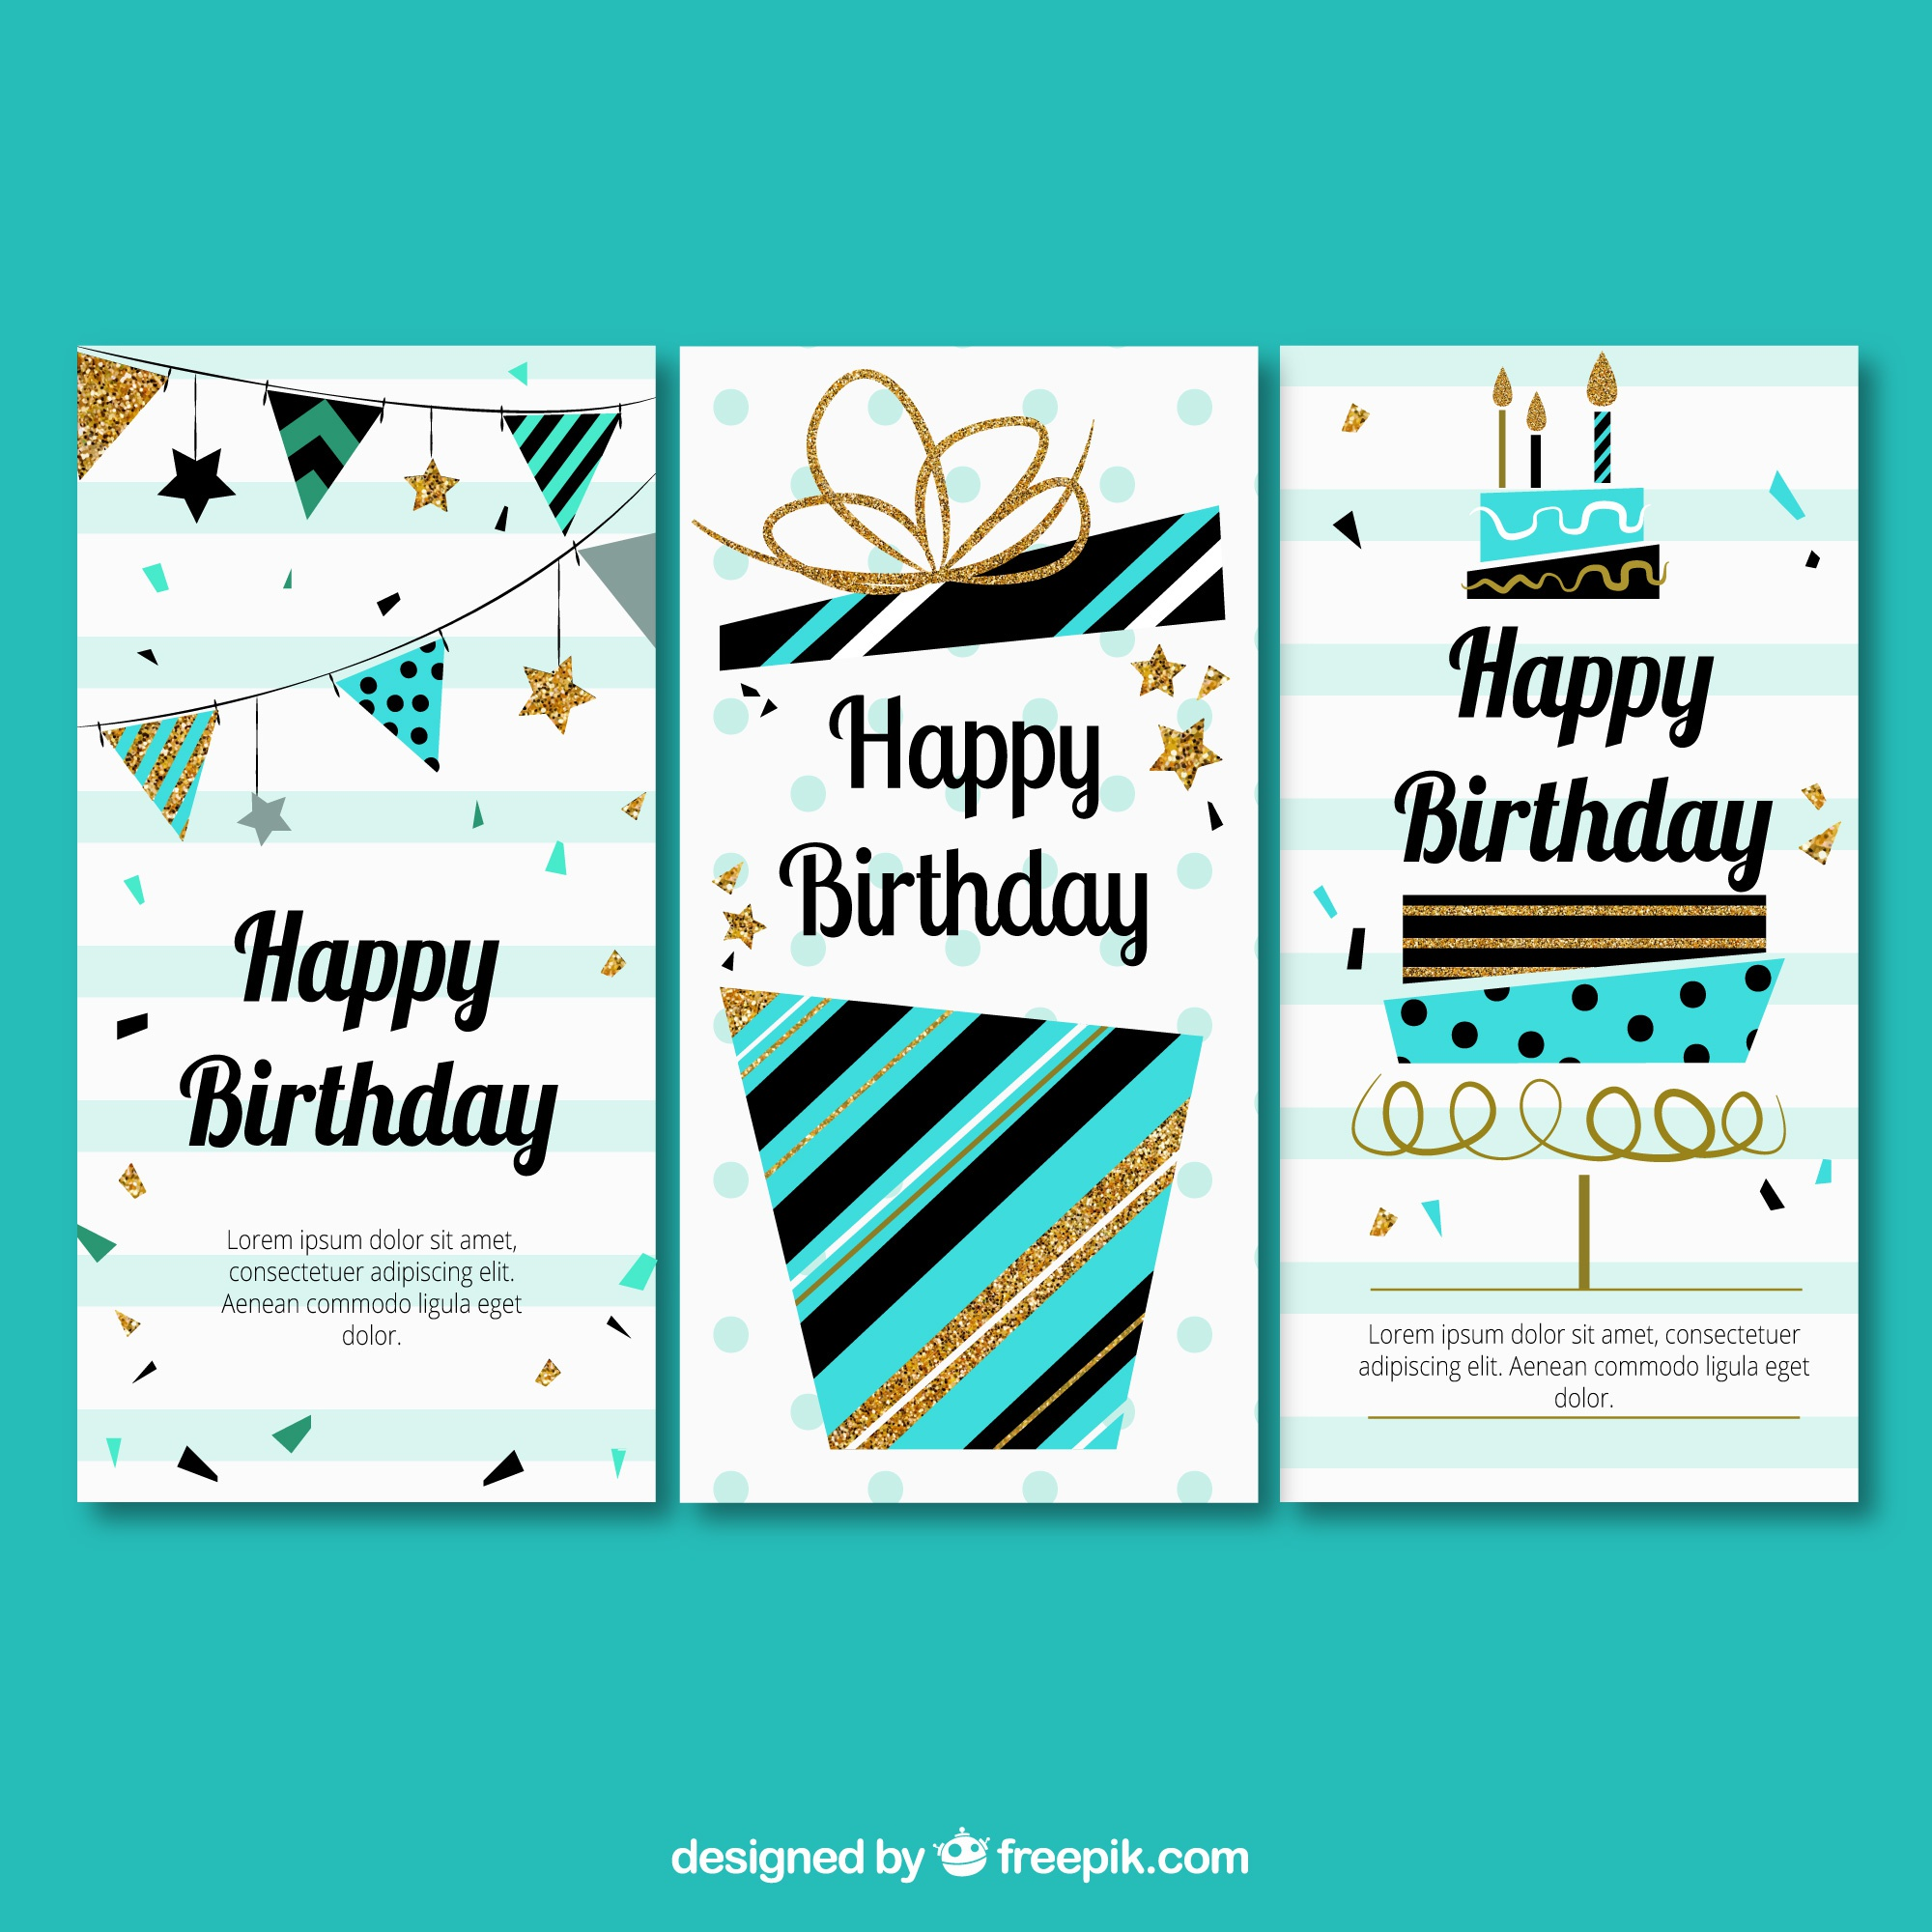 Three greeting of birthday in retro style